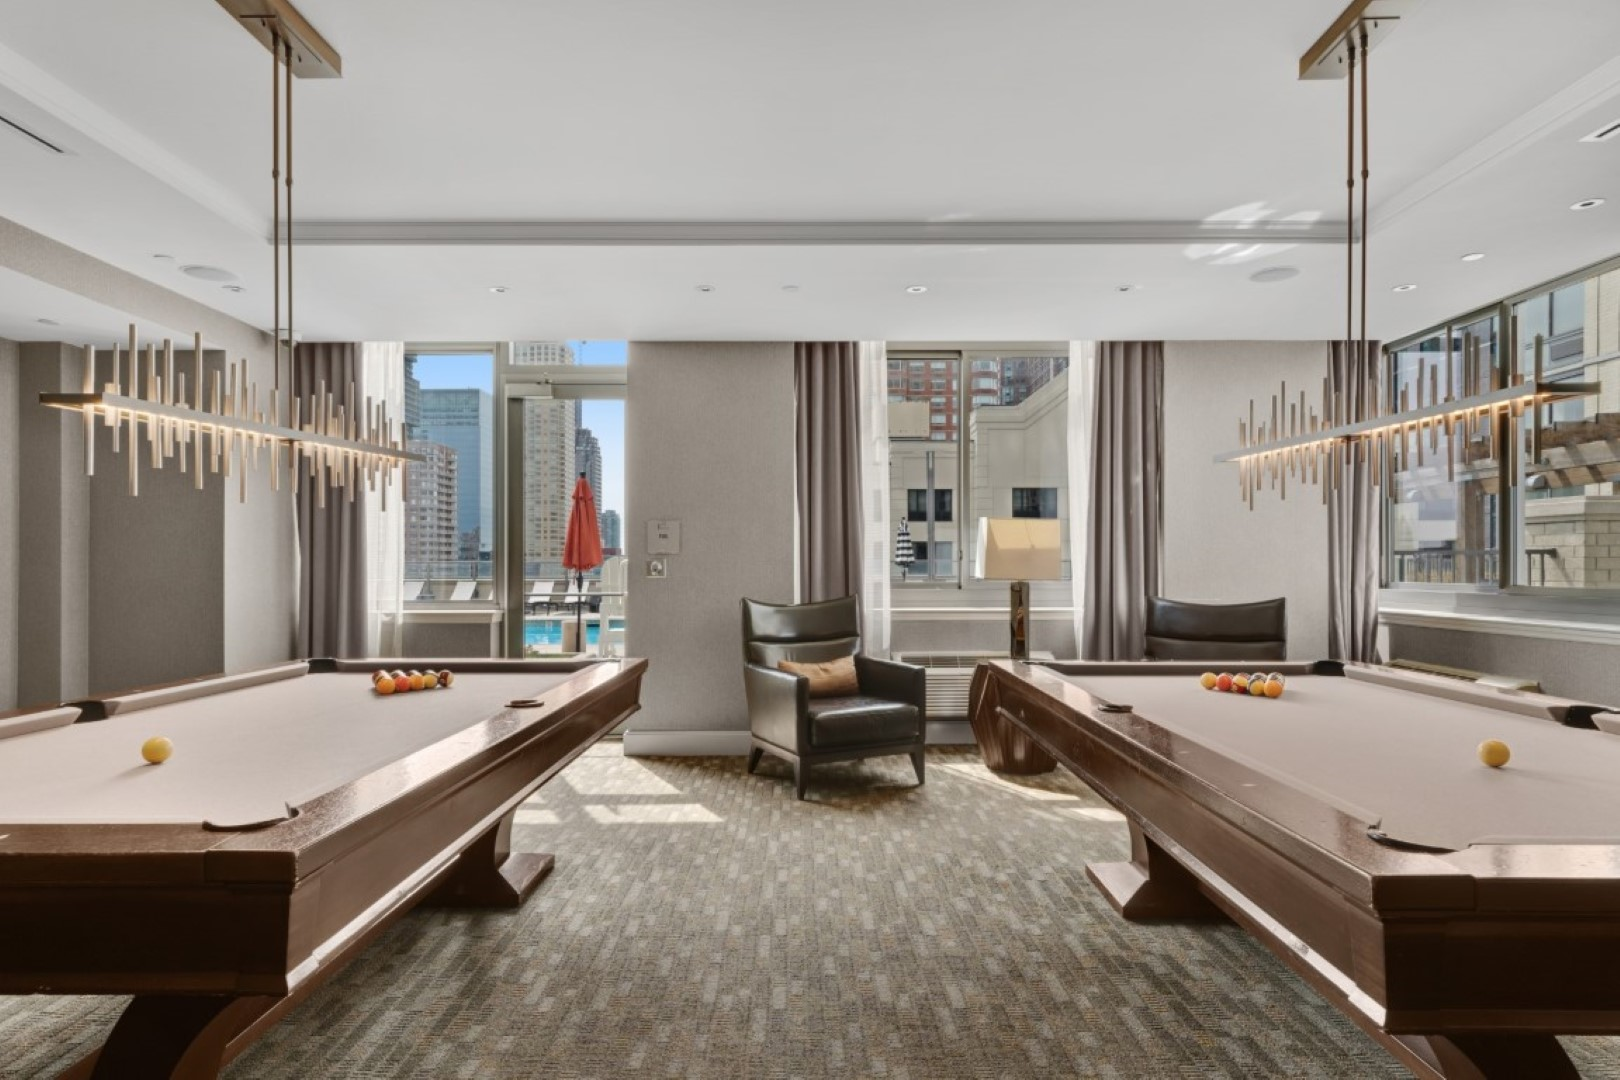 Games room at Monaco Apartments, Centre, Jersey City